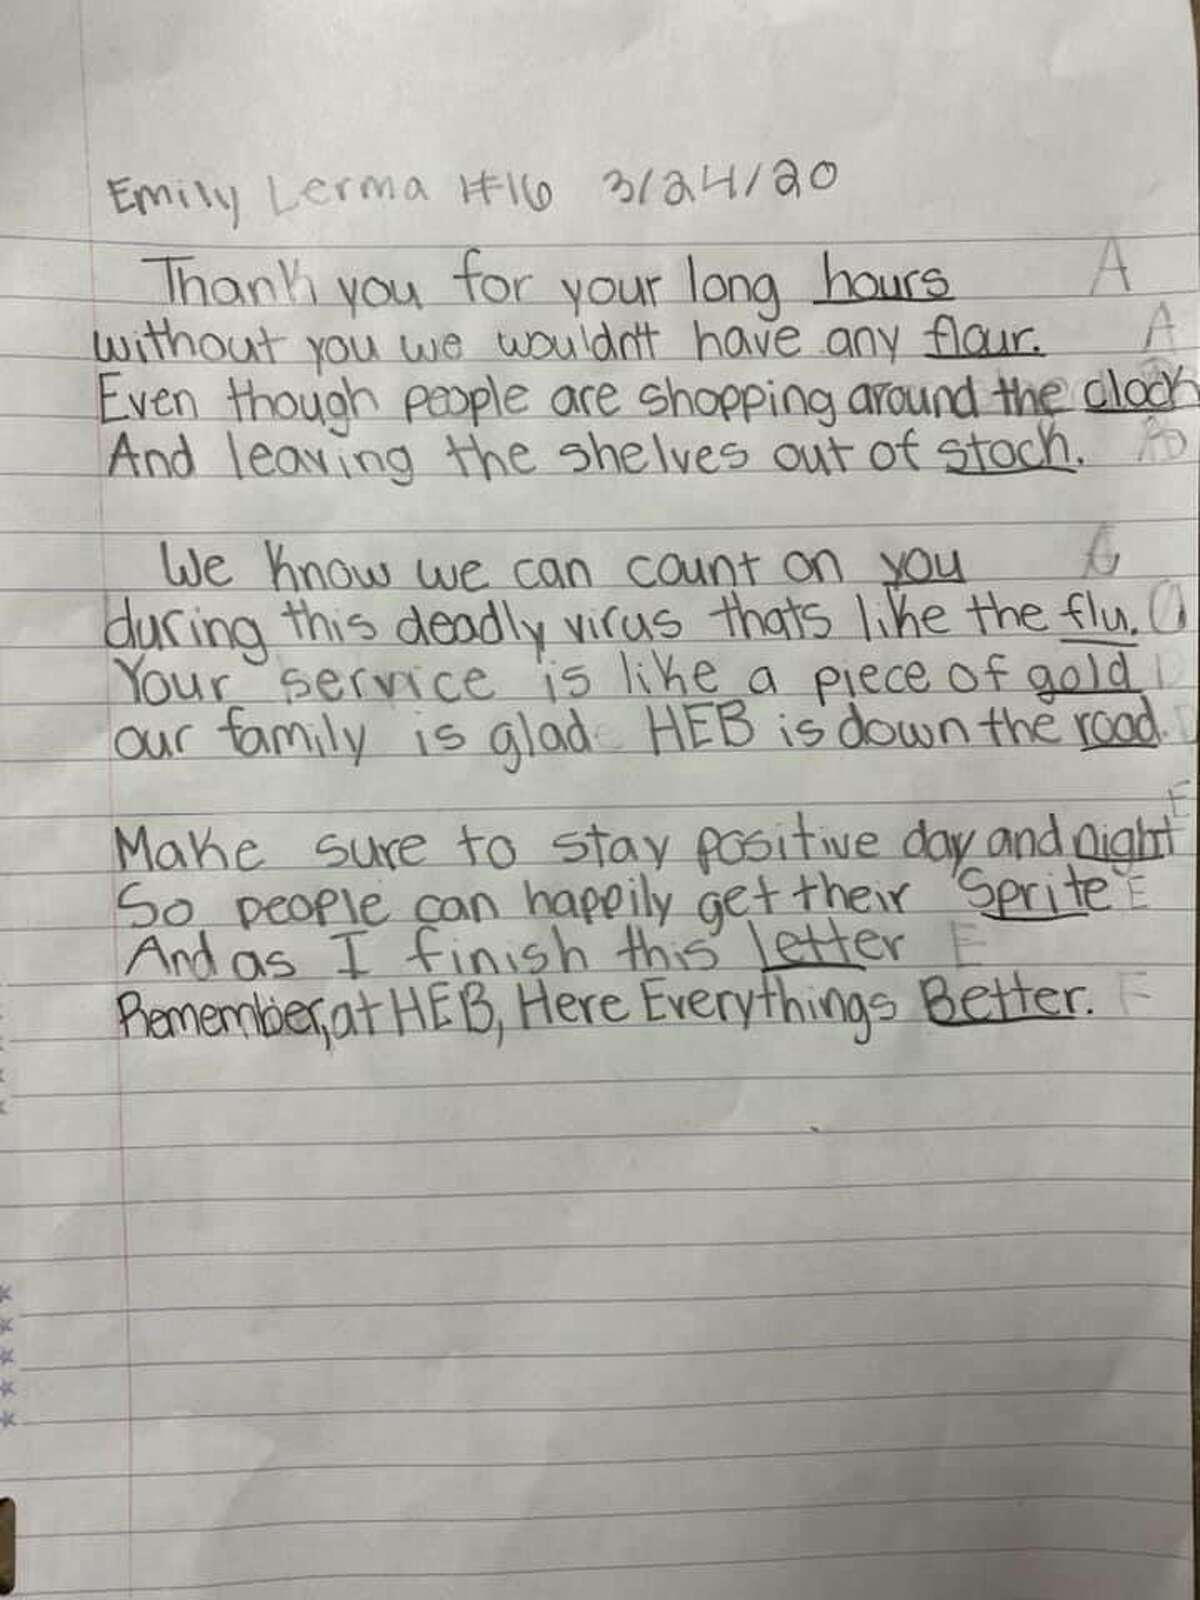 """With a sentence that reads """"your service is like a piece of gold"""" and with an ending that speaks volumes, a San Antonio 10-year-old girl thanked H-E-B with a heartfelt poem."""